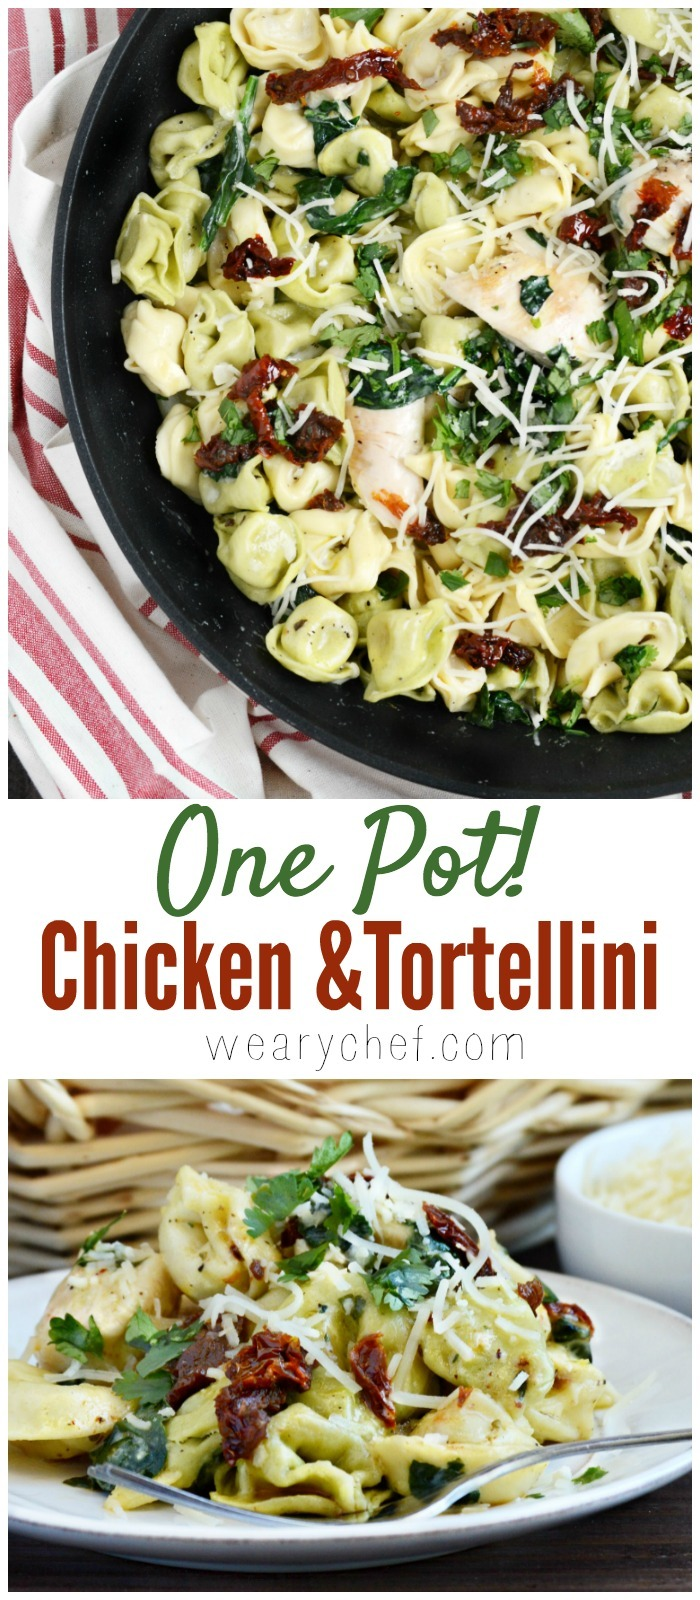 Whip up a pot of this easy Chicken Tortellini Dinner, and make everyone happy (even the picky eaters)!